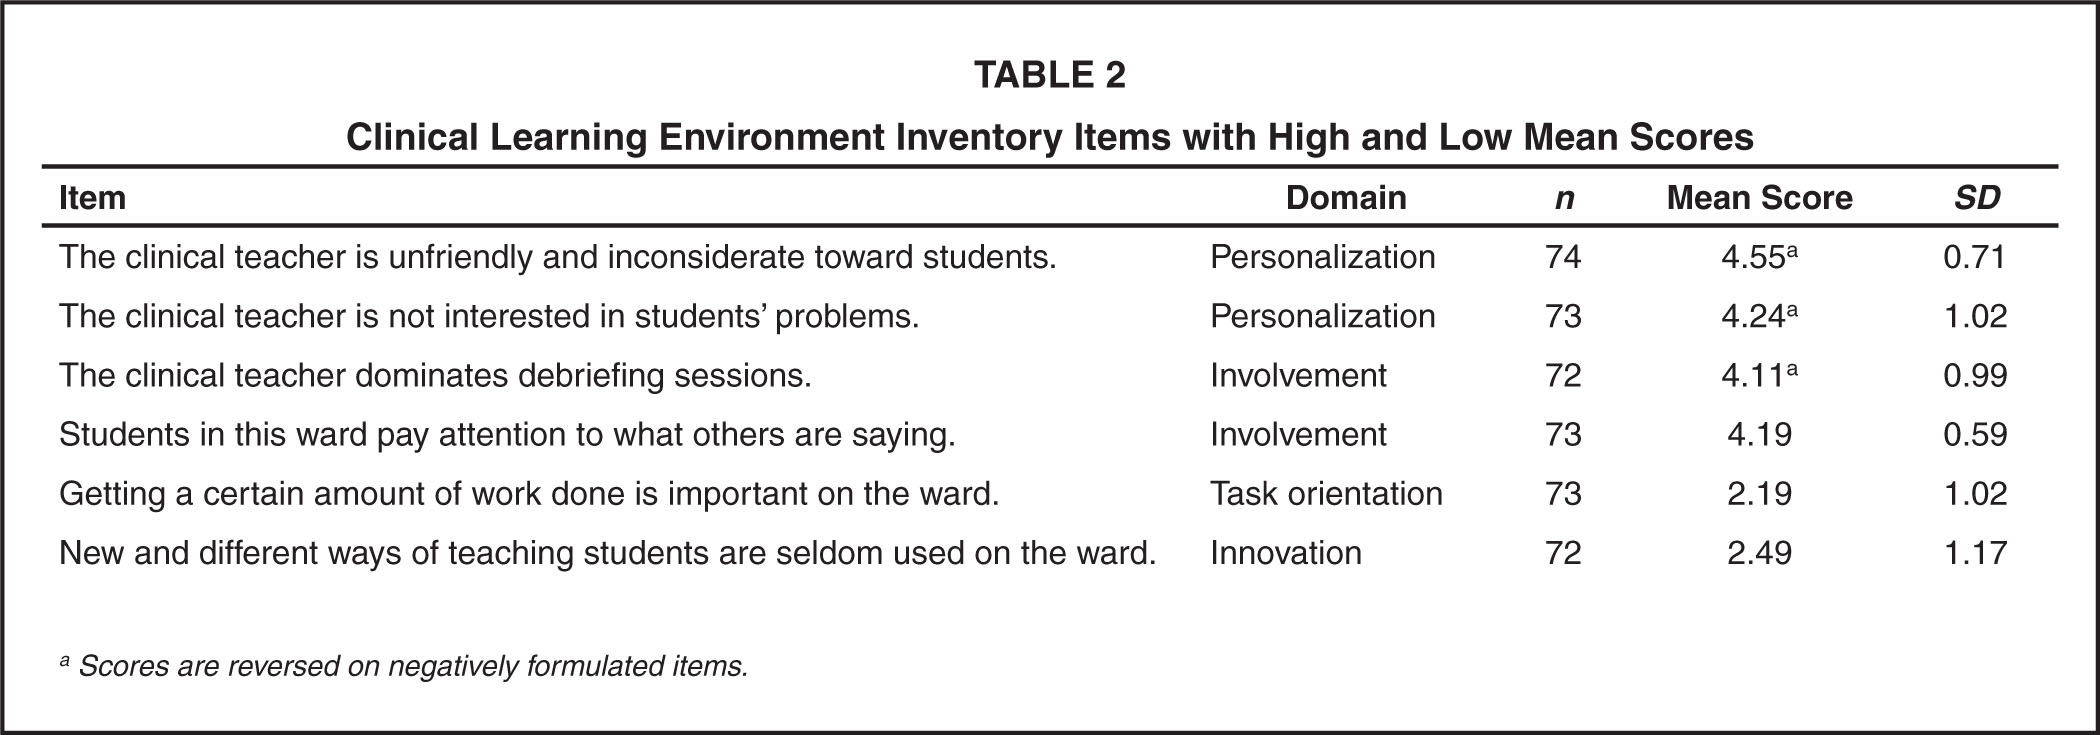 Clinical Learning Environment Inventory Items with High and Low Mean Scores